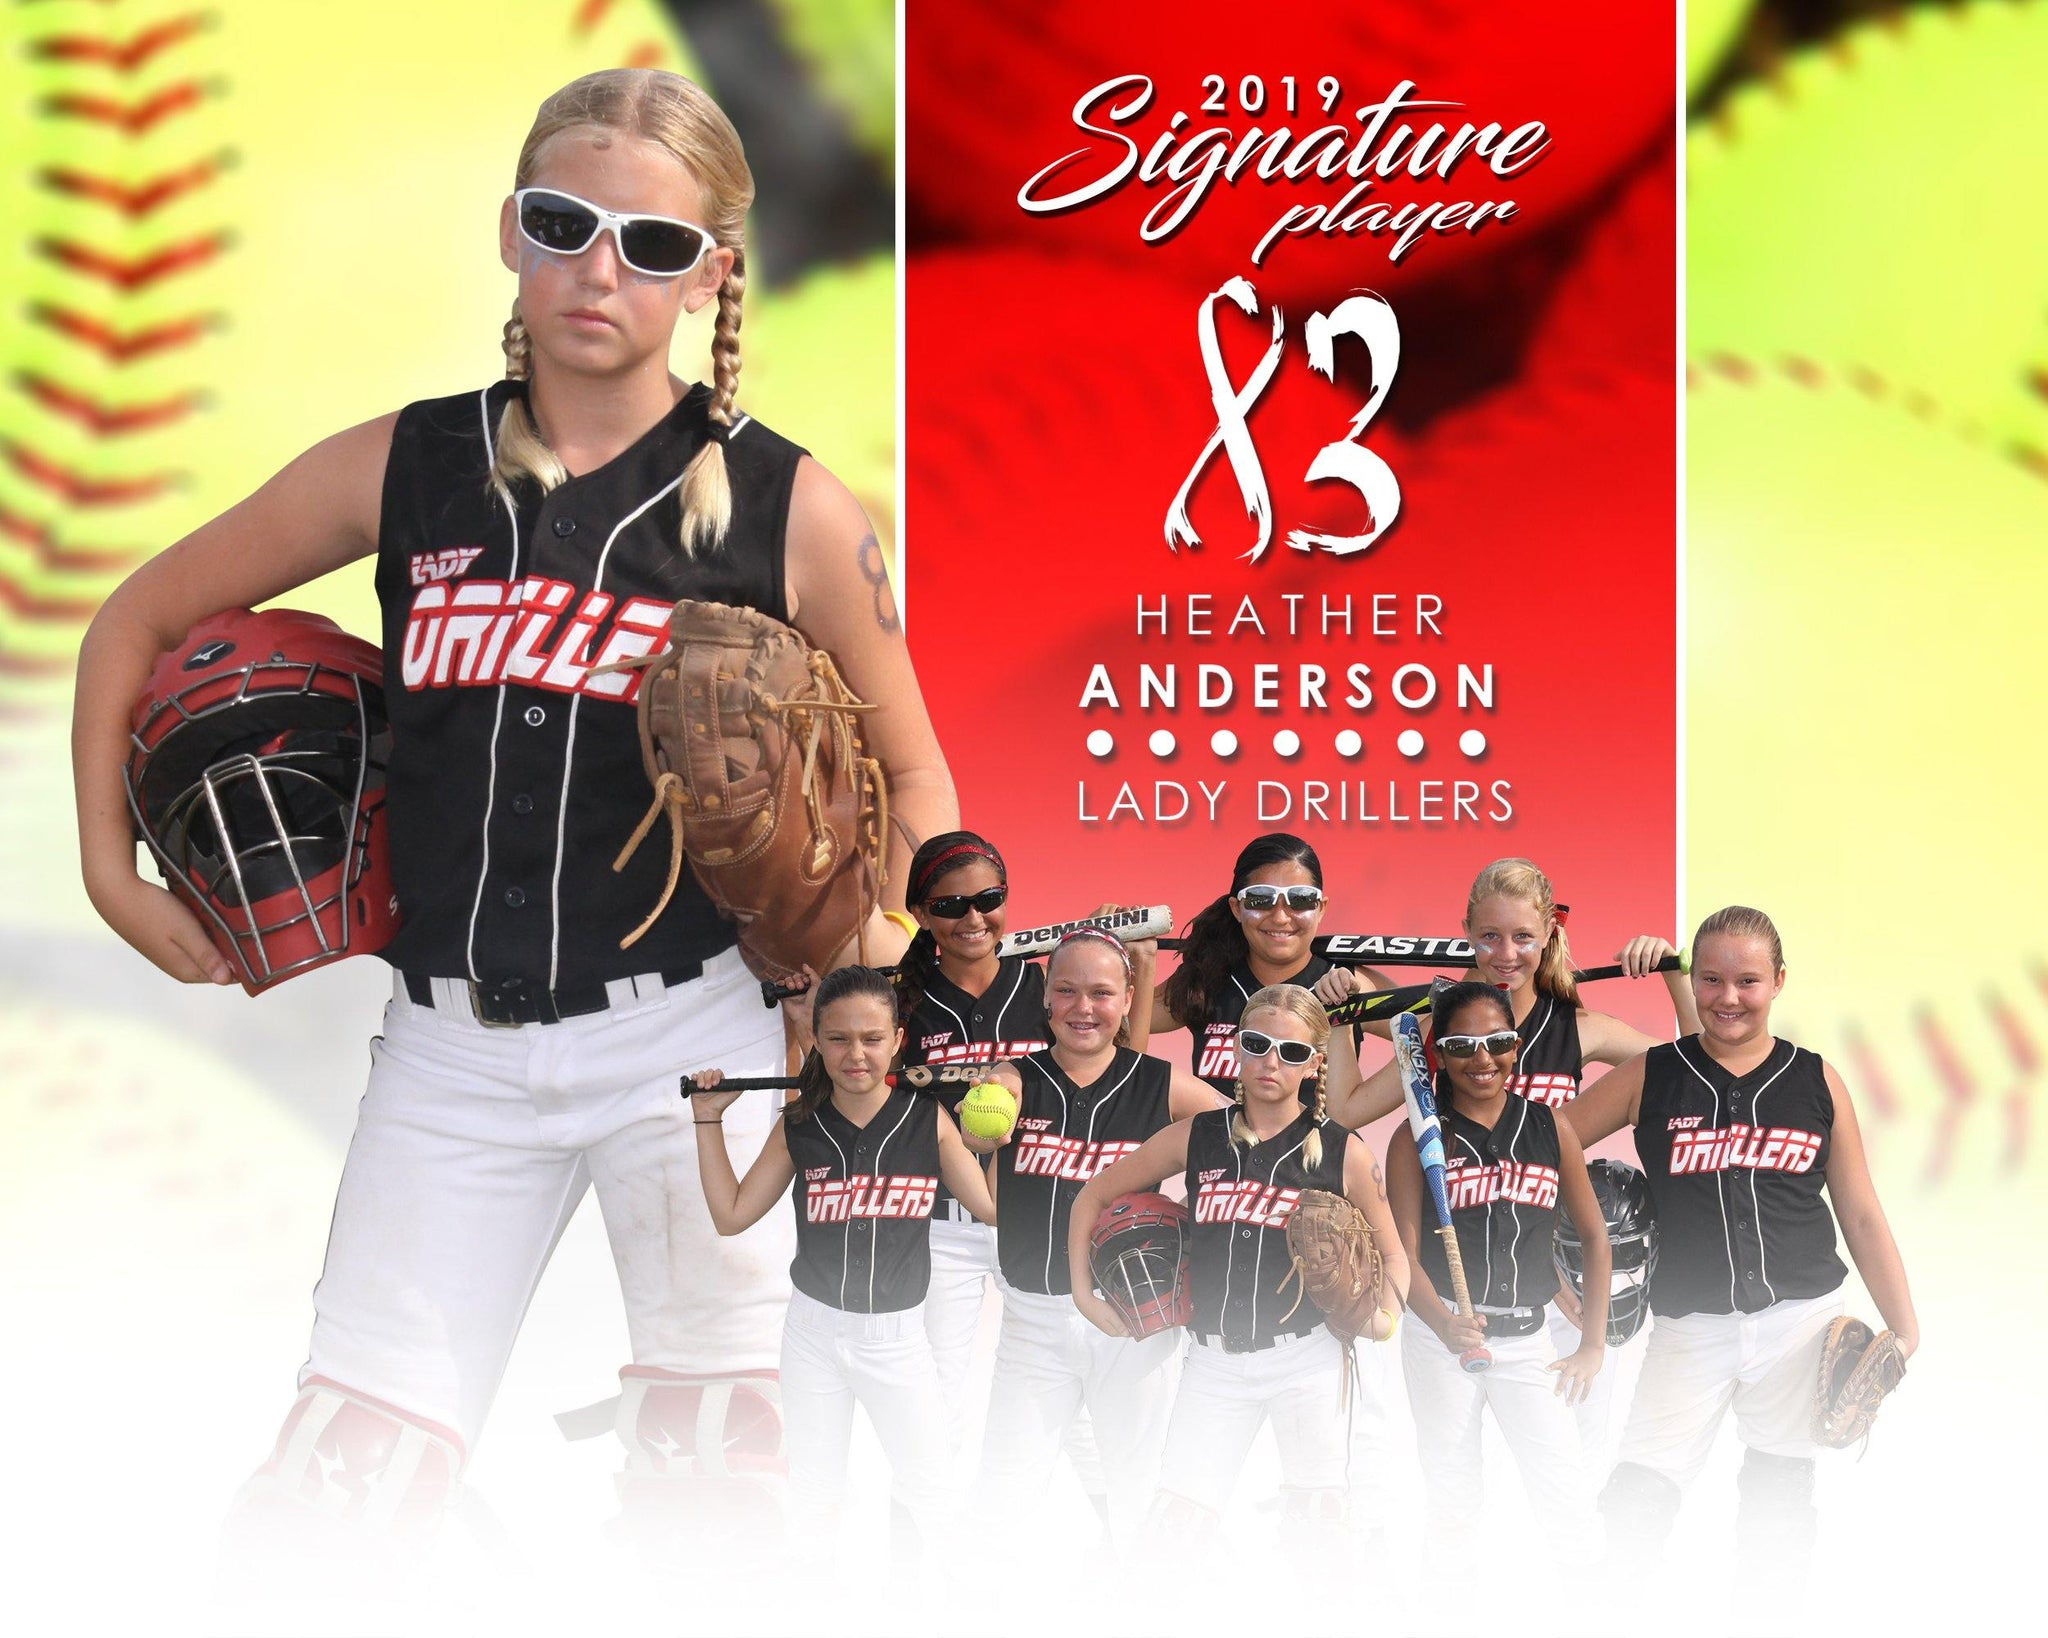 Signature Player - Softball - V1 - Extraction Memory Mate H Template-Photoshop Template - Photo Solutions